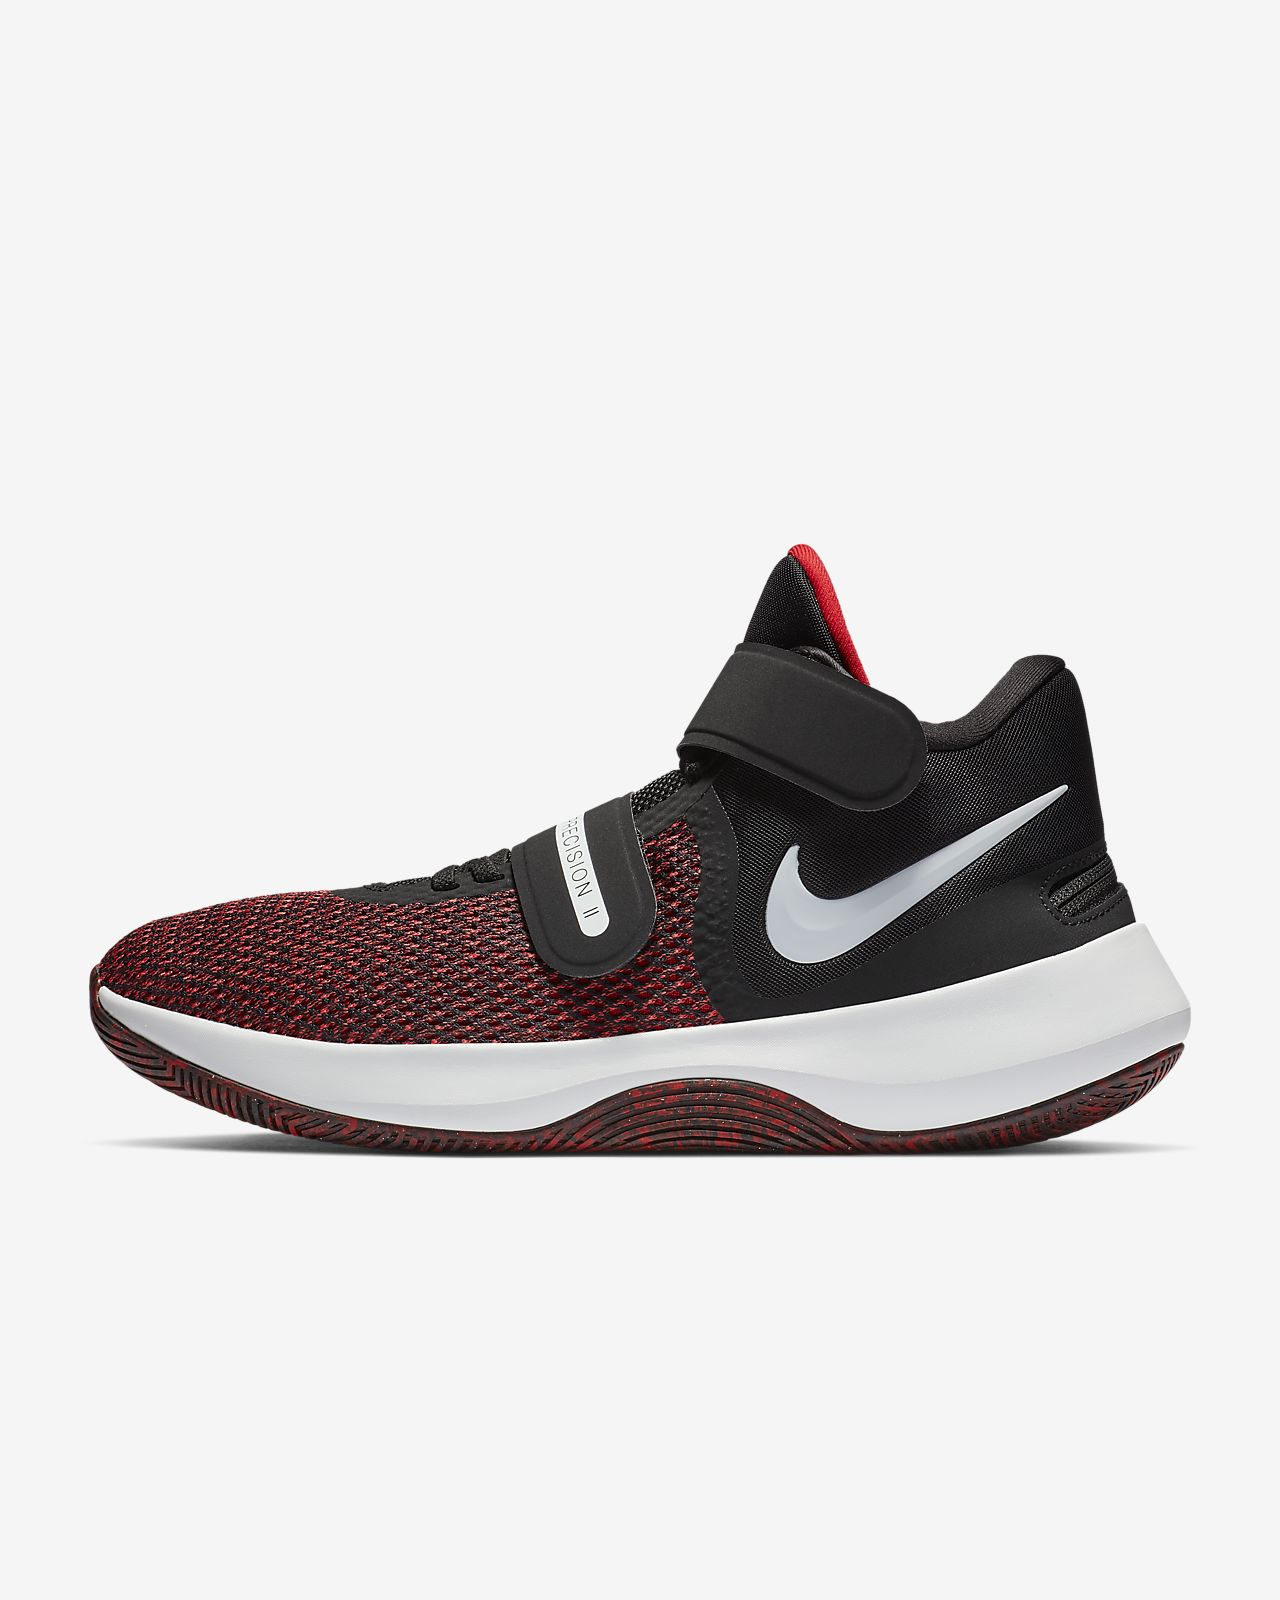 b09780cbc7f Nike Air Precision II FlyEase Men s Basketball Shoe. Nike.com AU